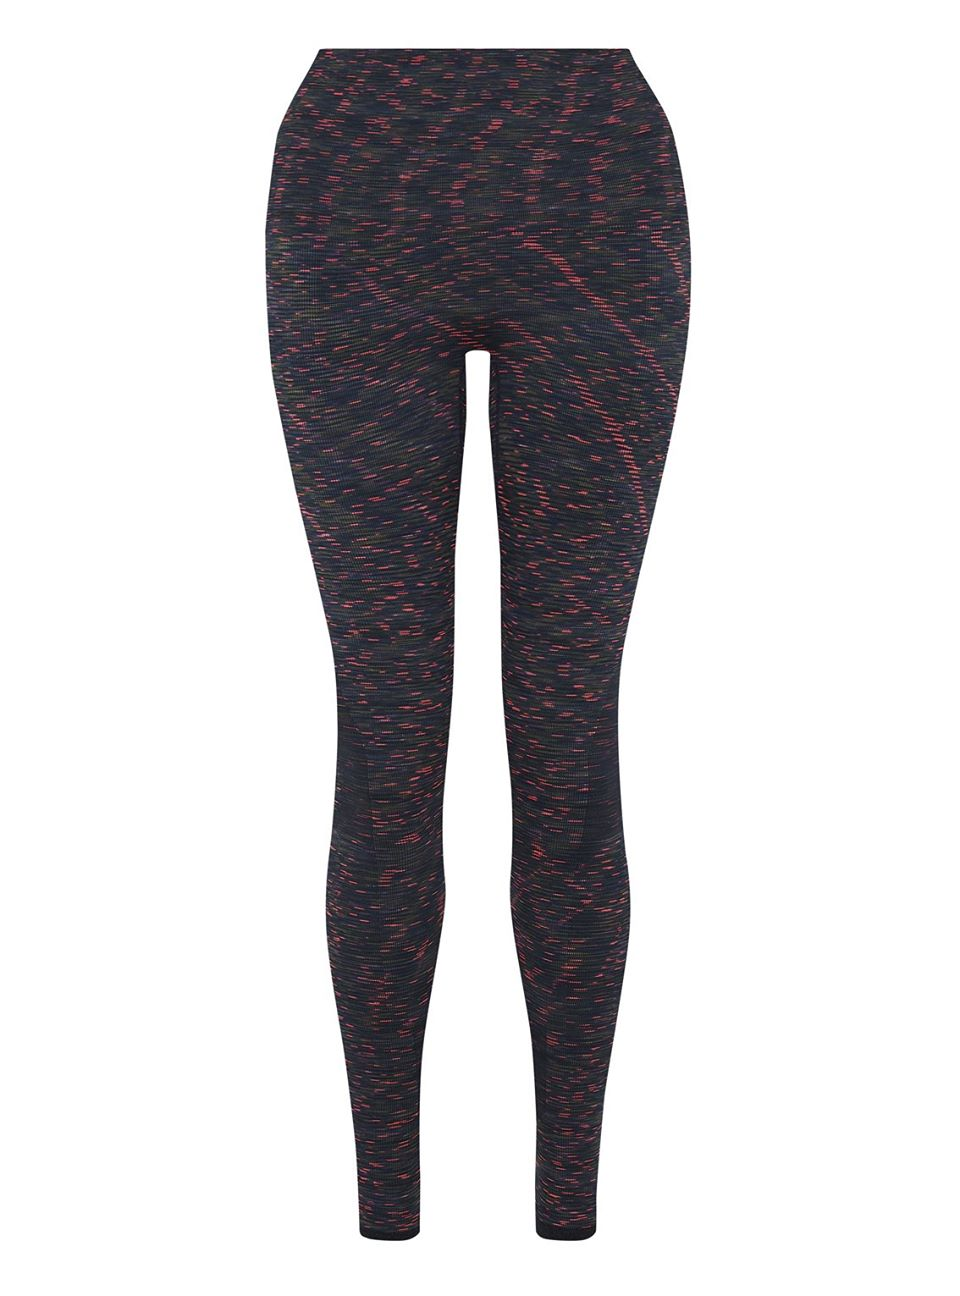 SD Fluro Techtonic Leggings